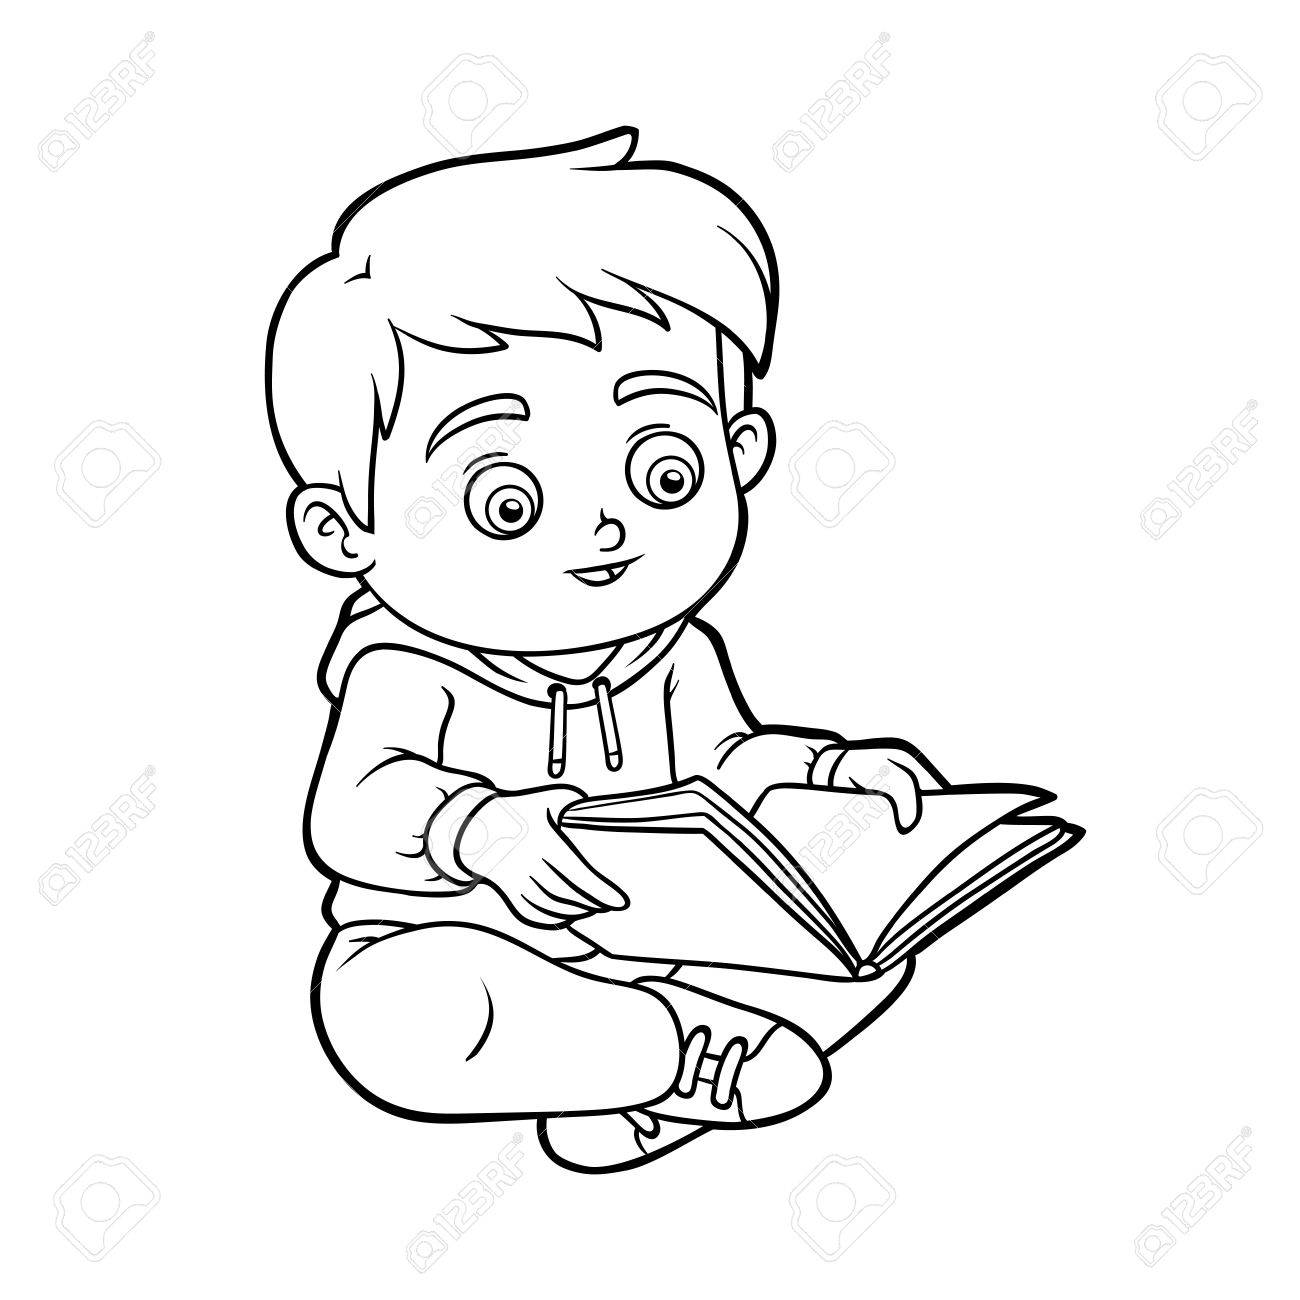 Coloring Book For Children, Young Boy Reading A Book Royalty Free ...